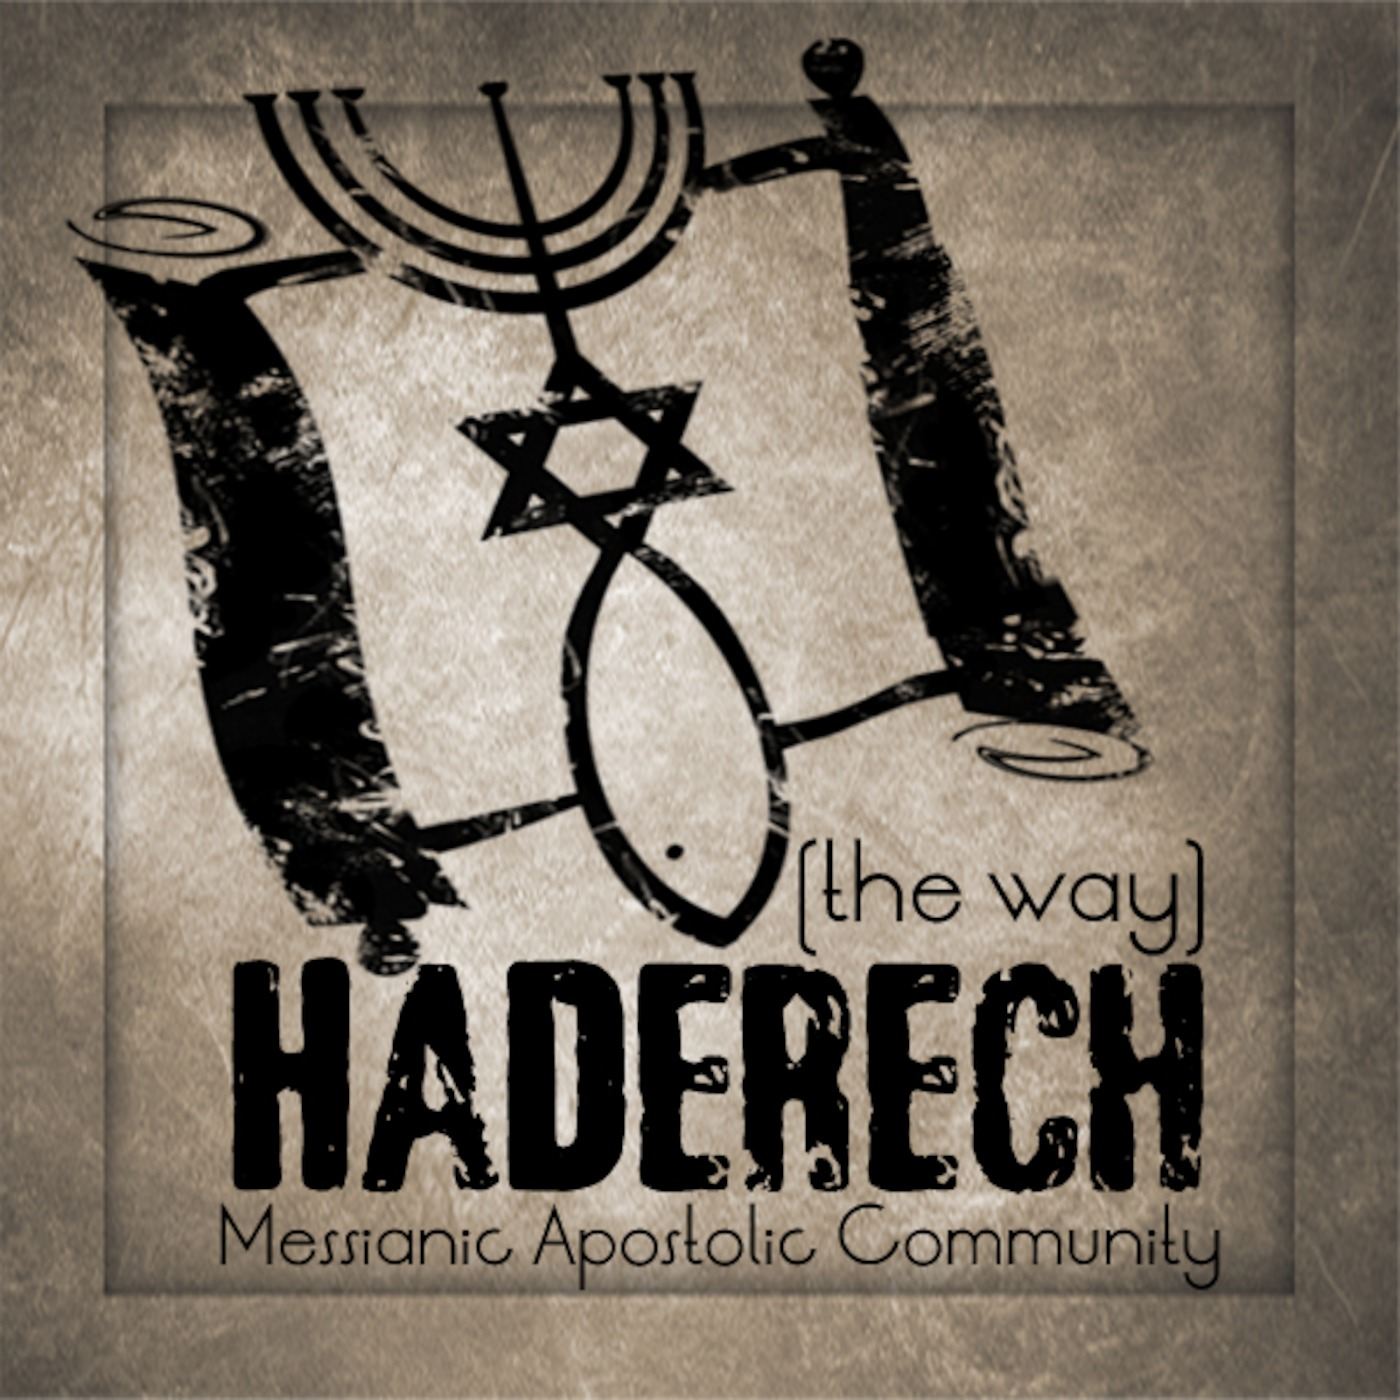 HaDerech Community's Podcast